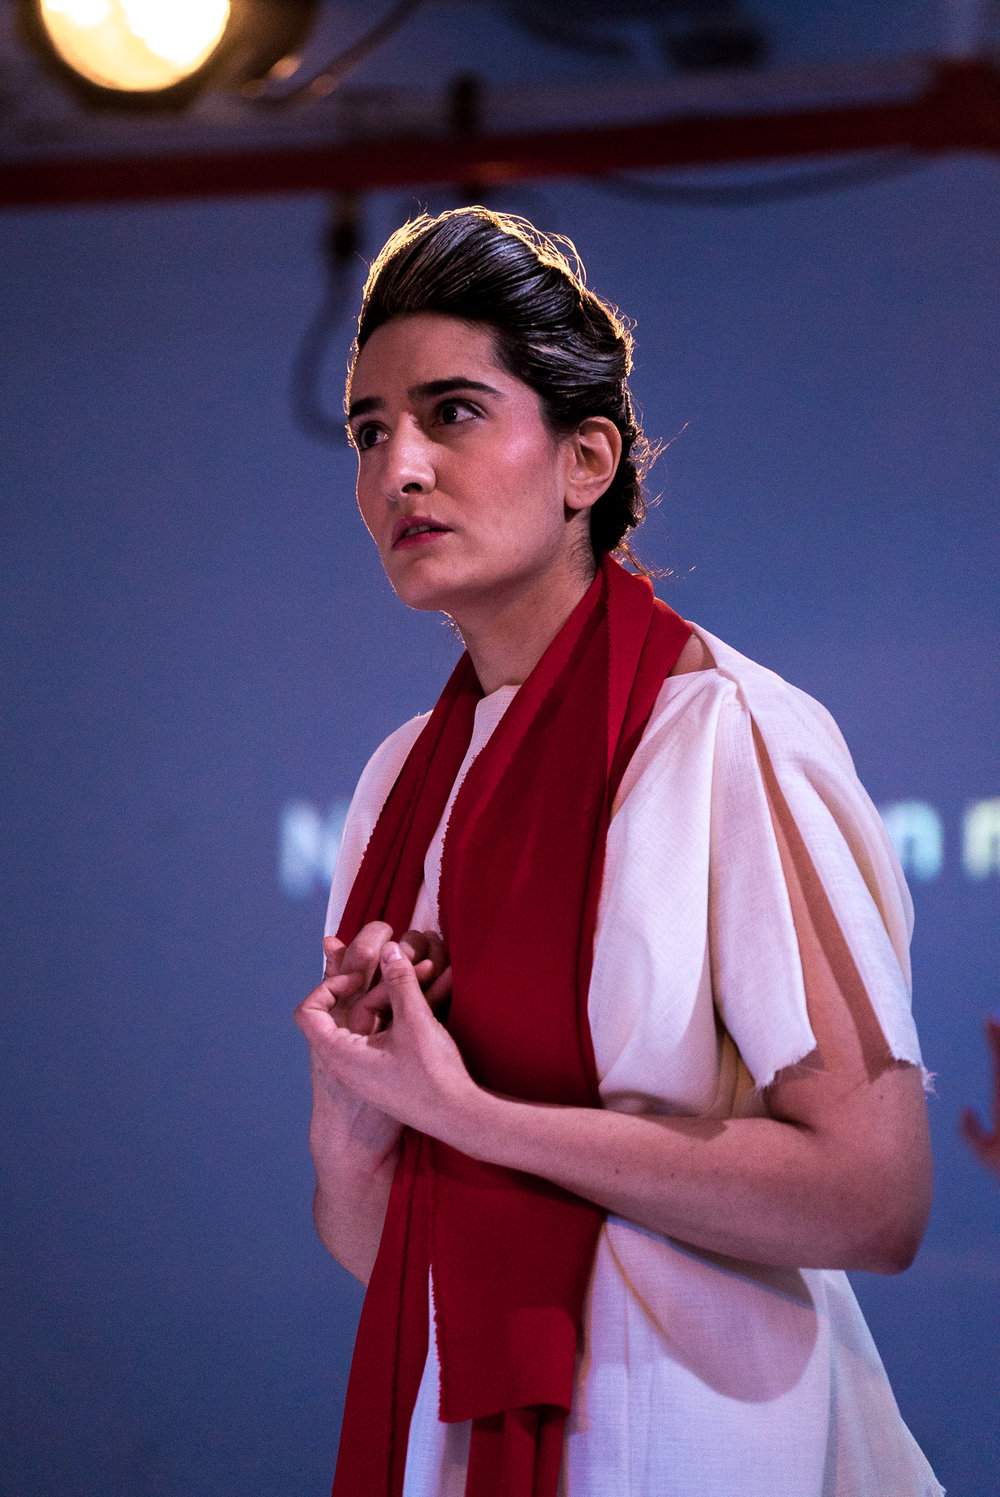 Aumna Iqbal as Orfeo. Photo credit: Lucas Godlewski